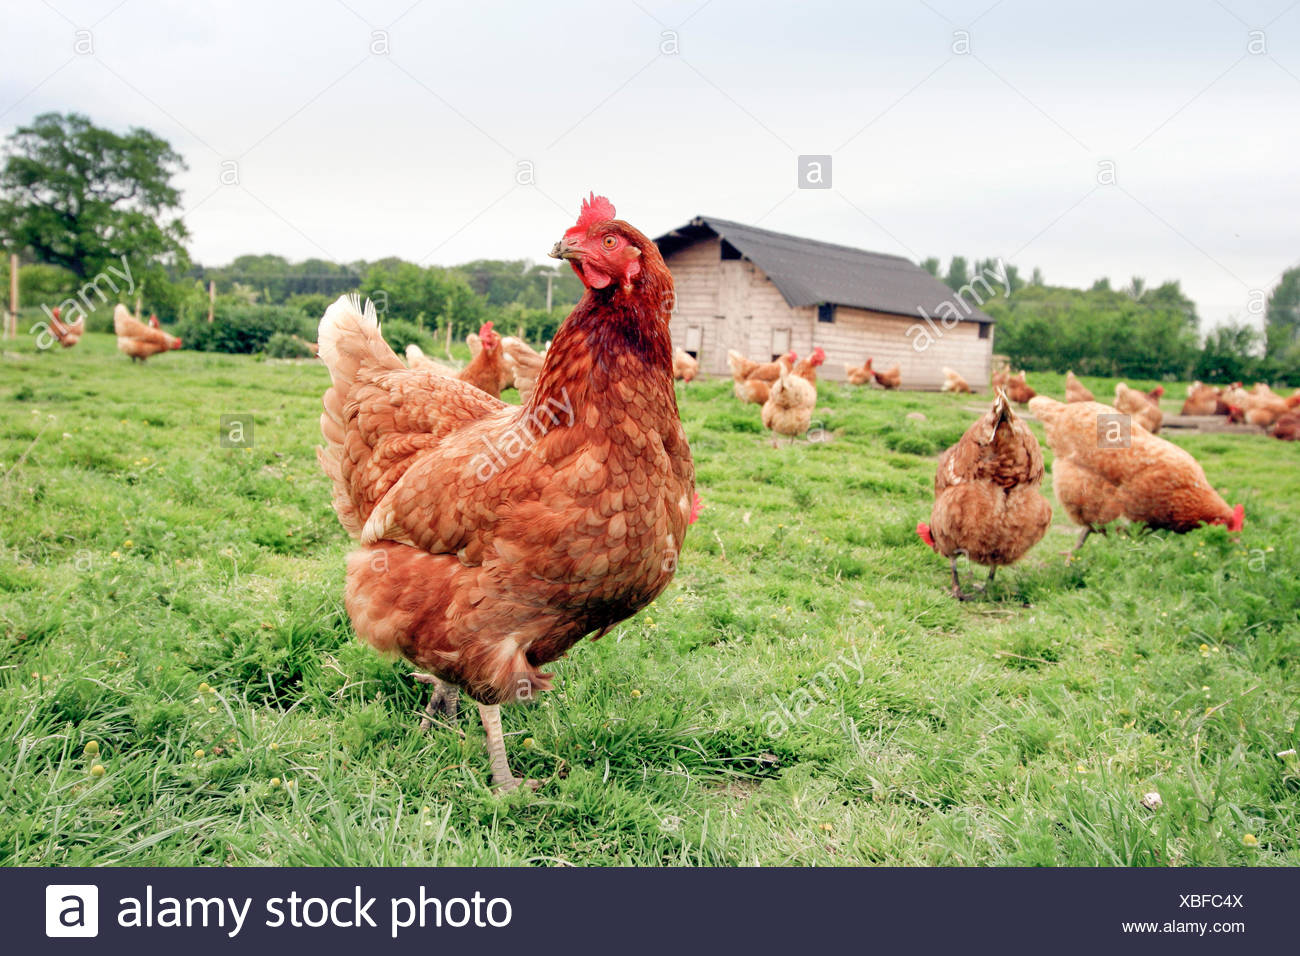 Free range chickens on a poultry farm. - Stock Image